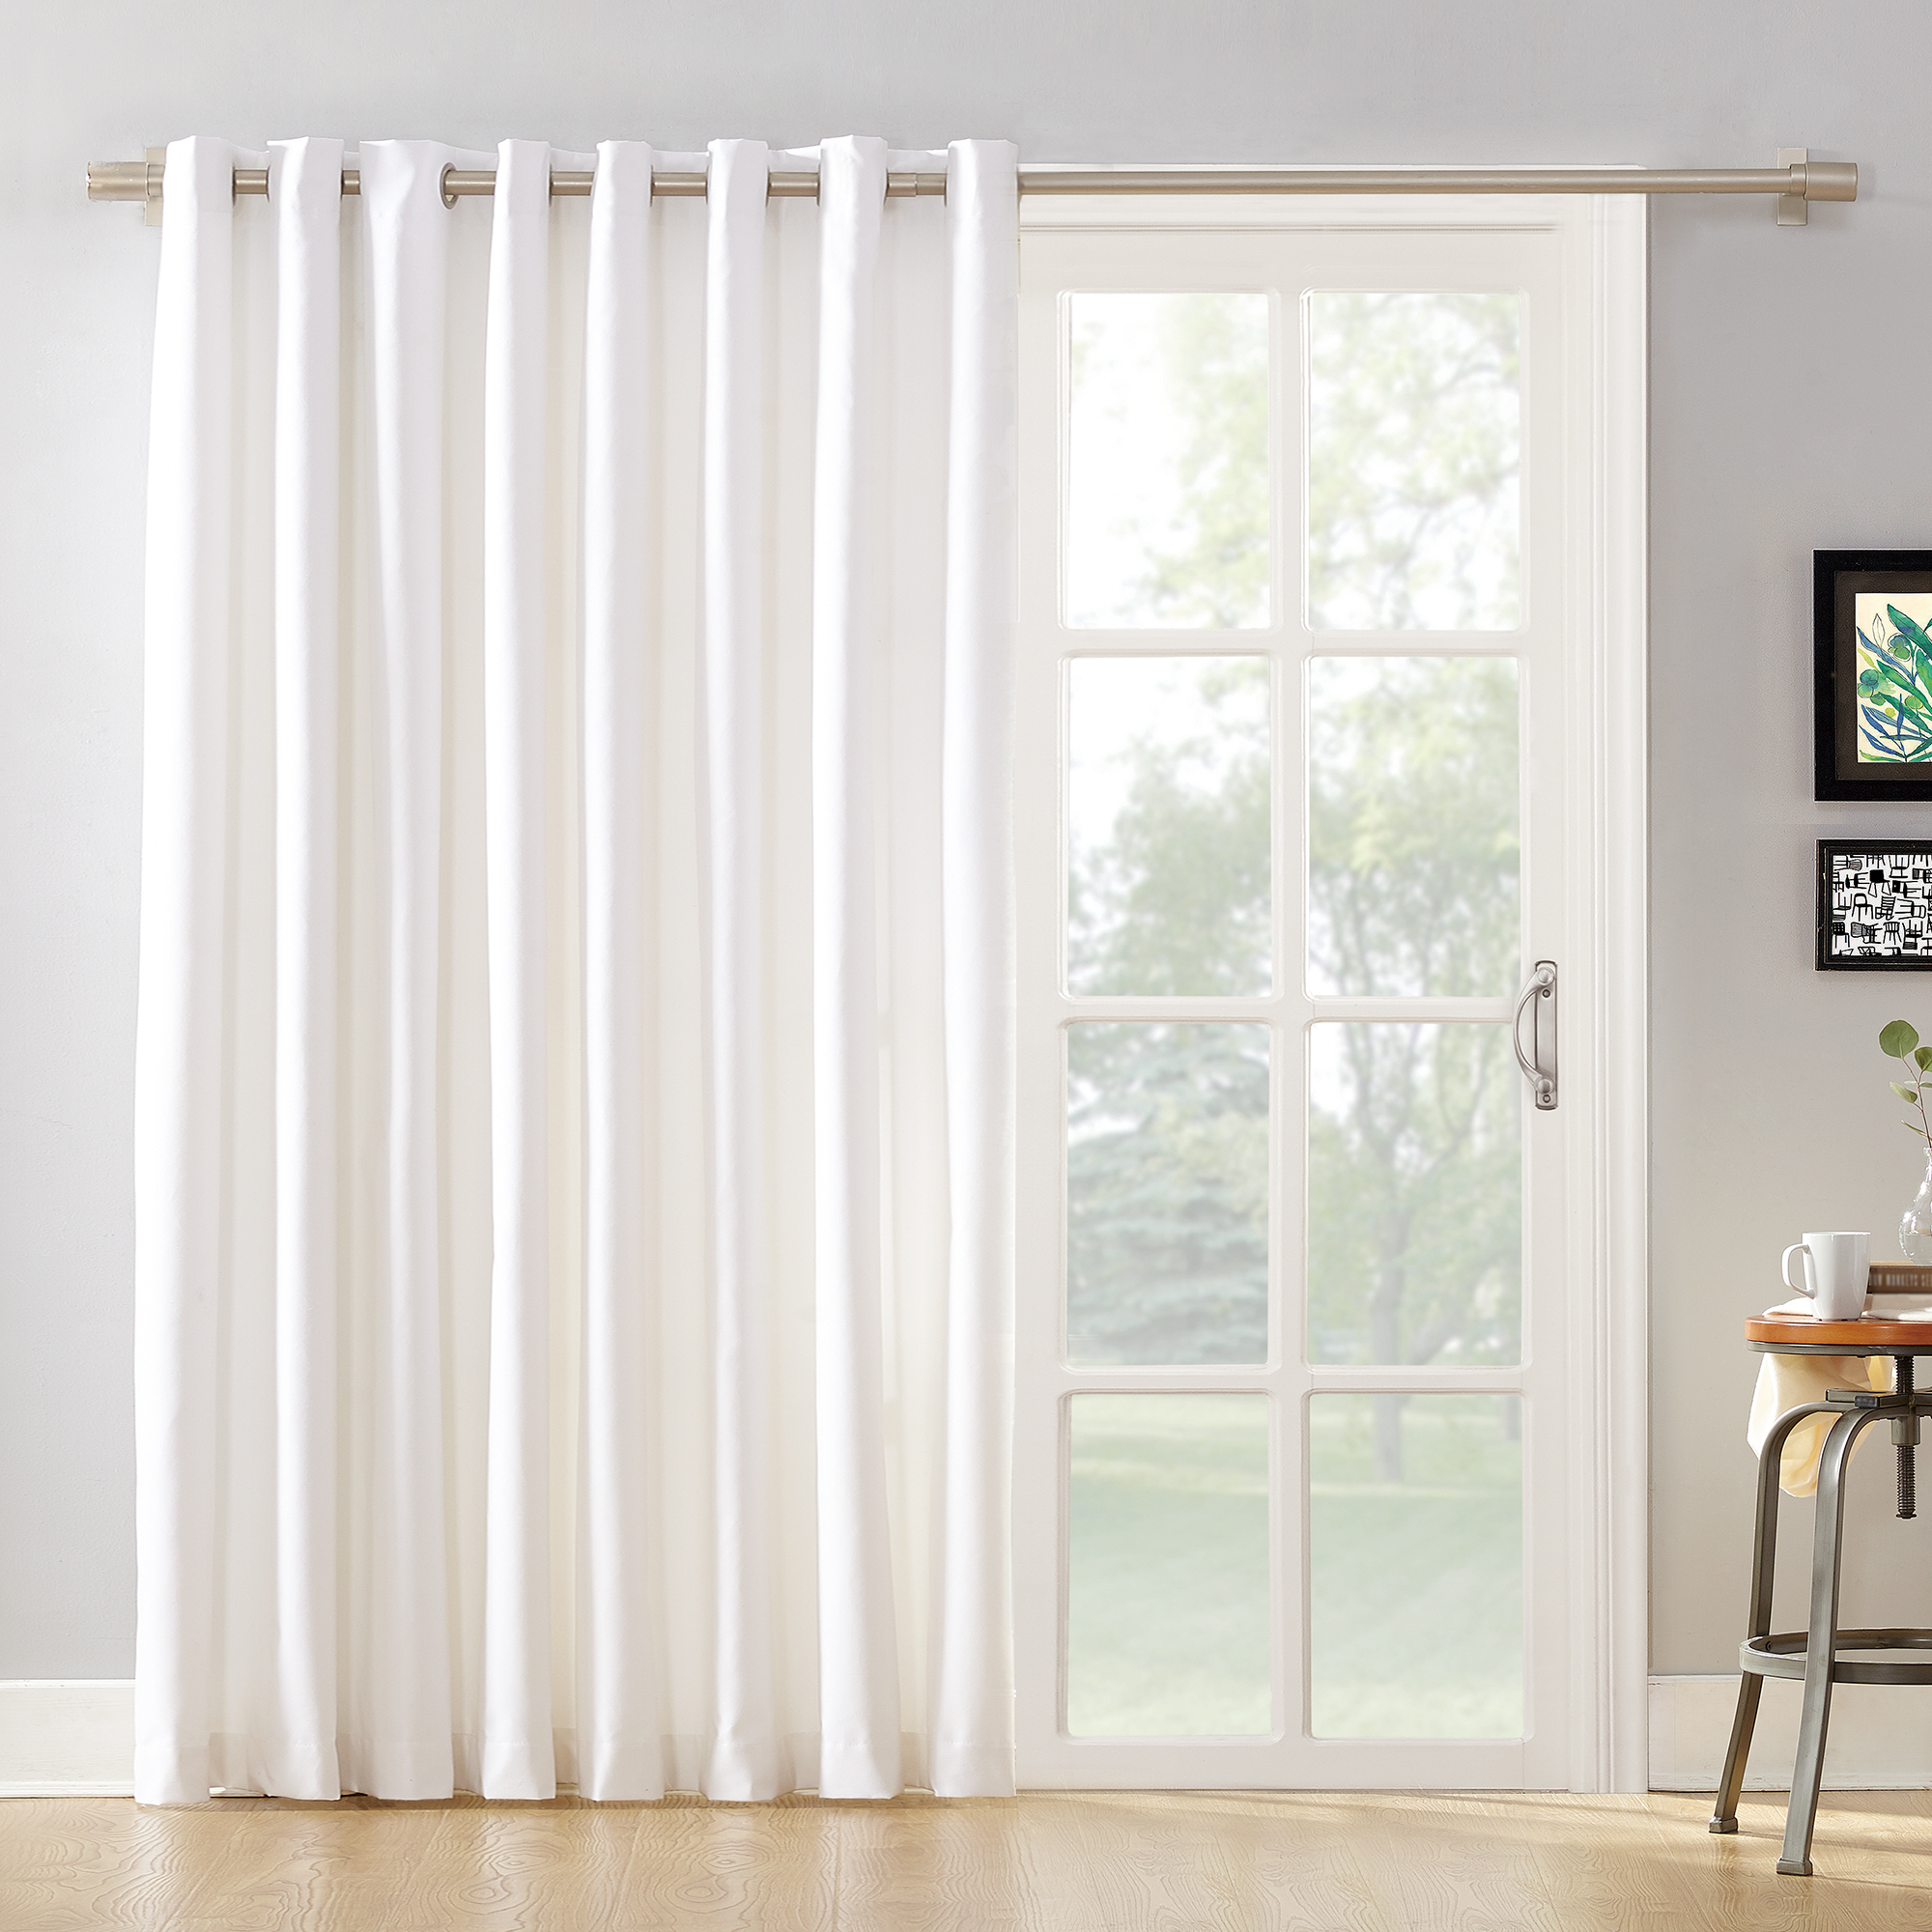 Sliding Door Curtain Mainstays Sliding Glass Door Thermal Lined Room Darkening Grommet Curtain Panel